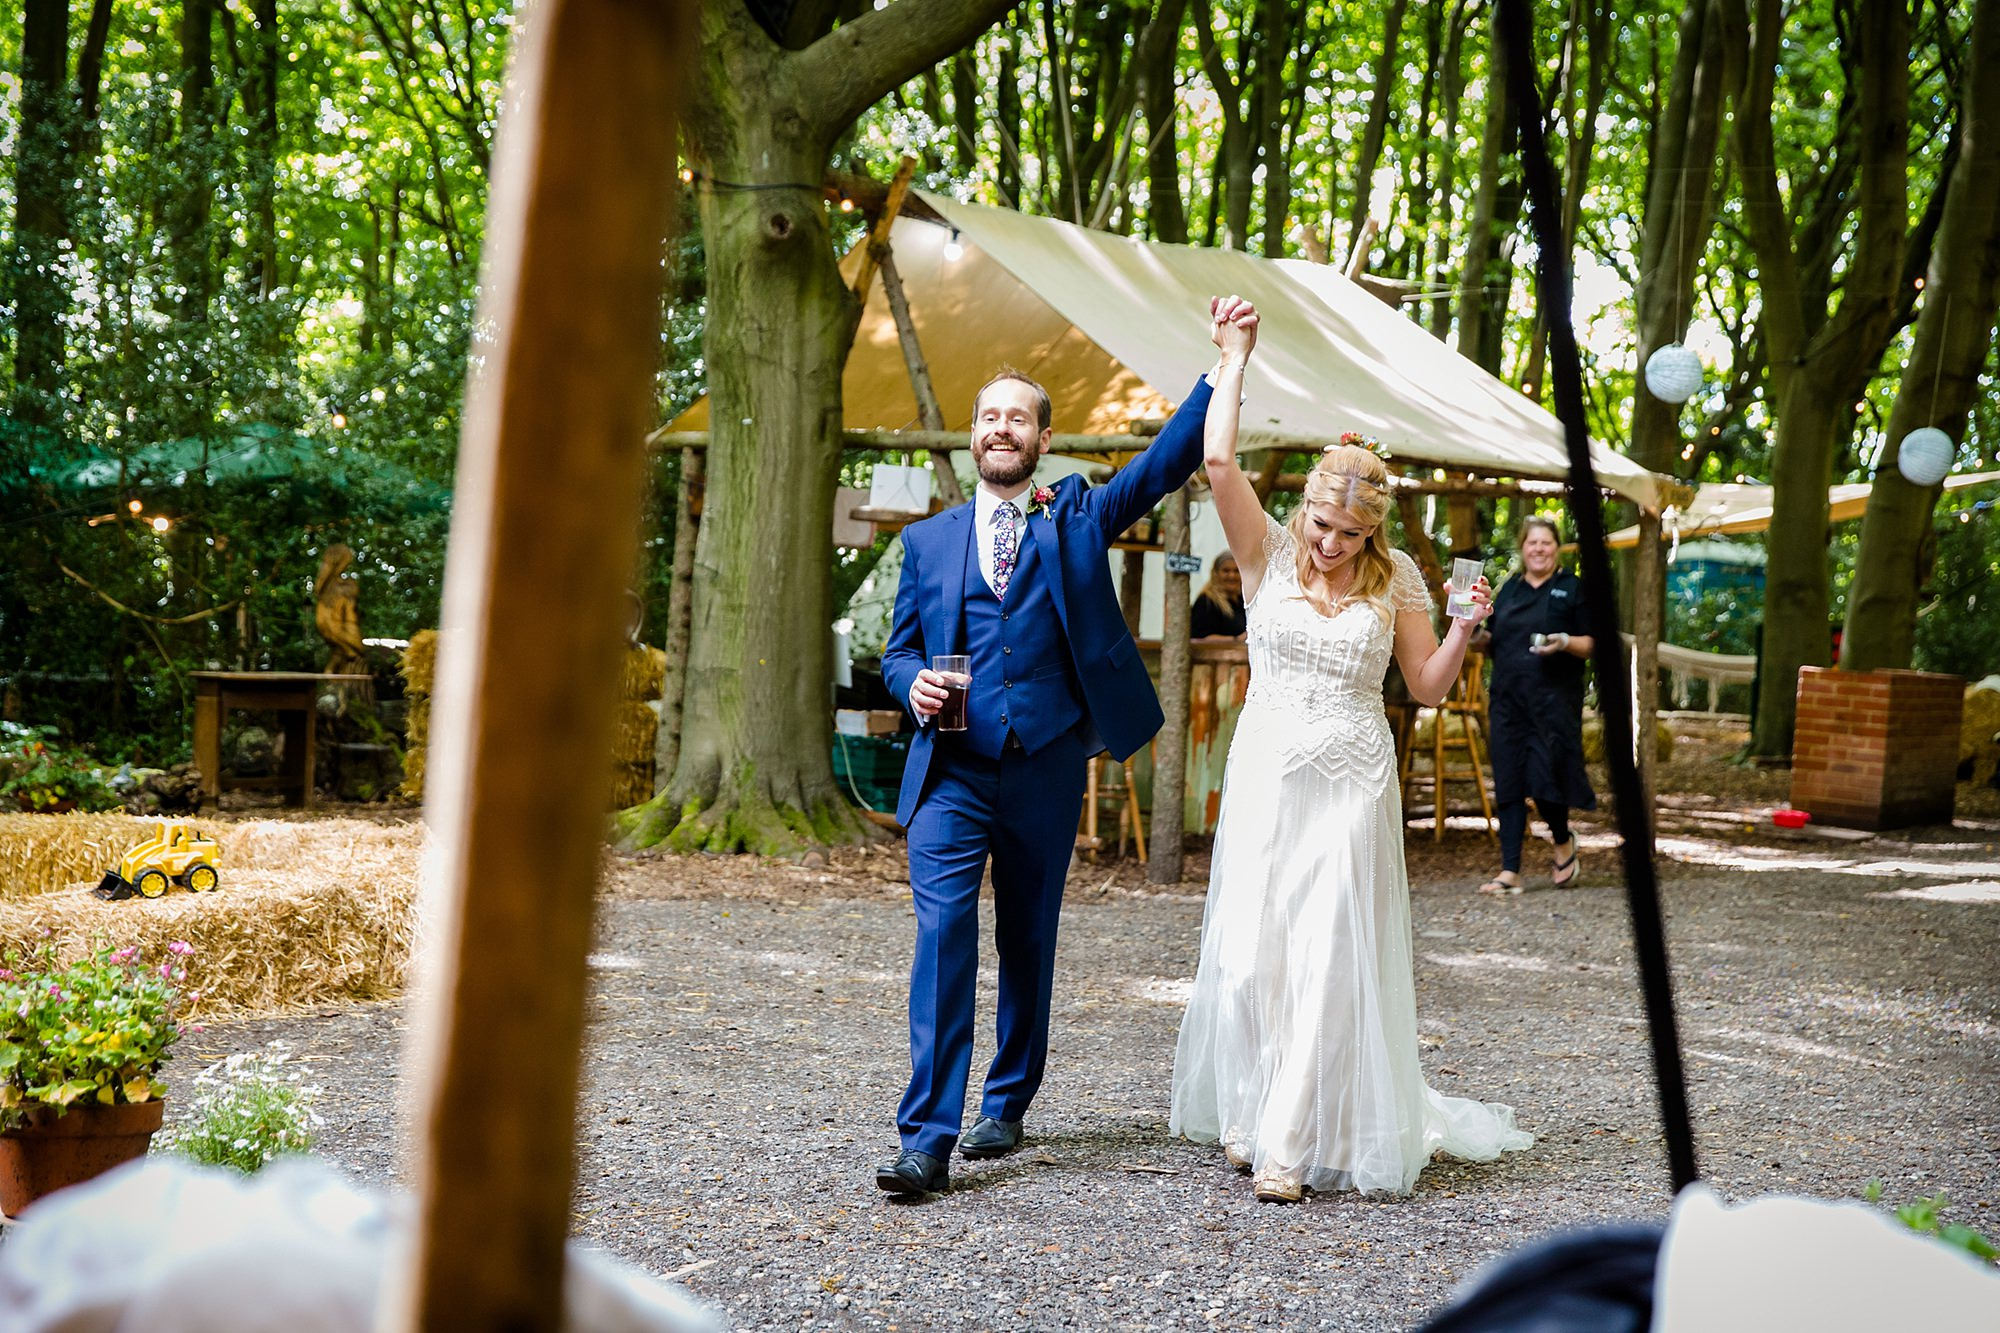 Woodland Weddings Truing bride and groom cheering